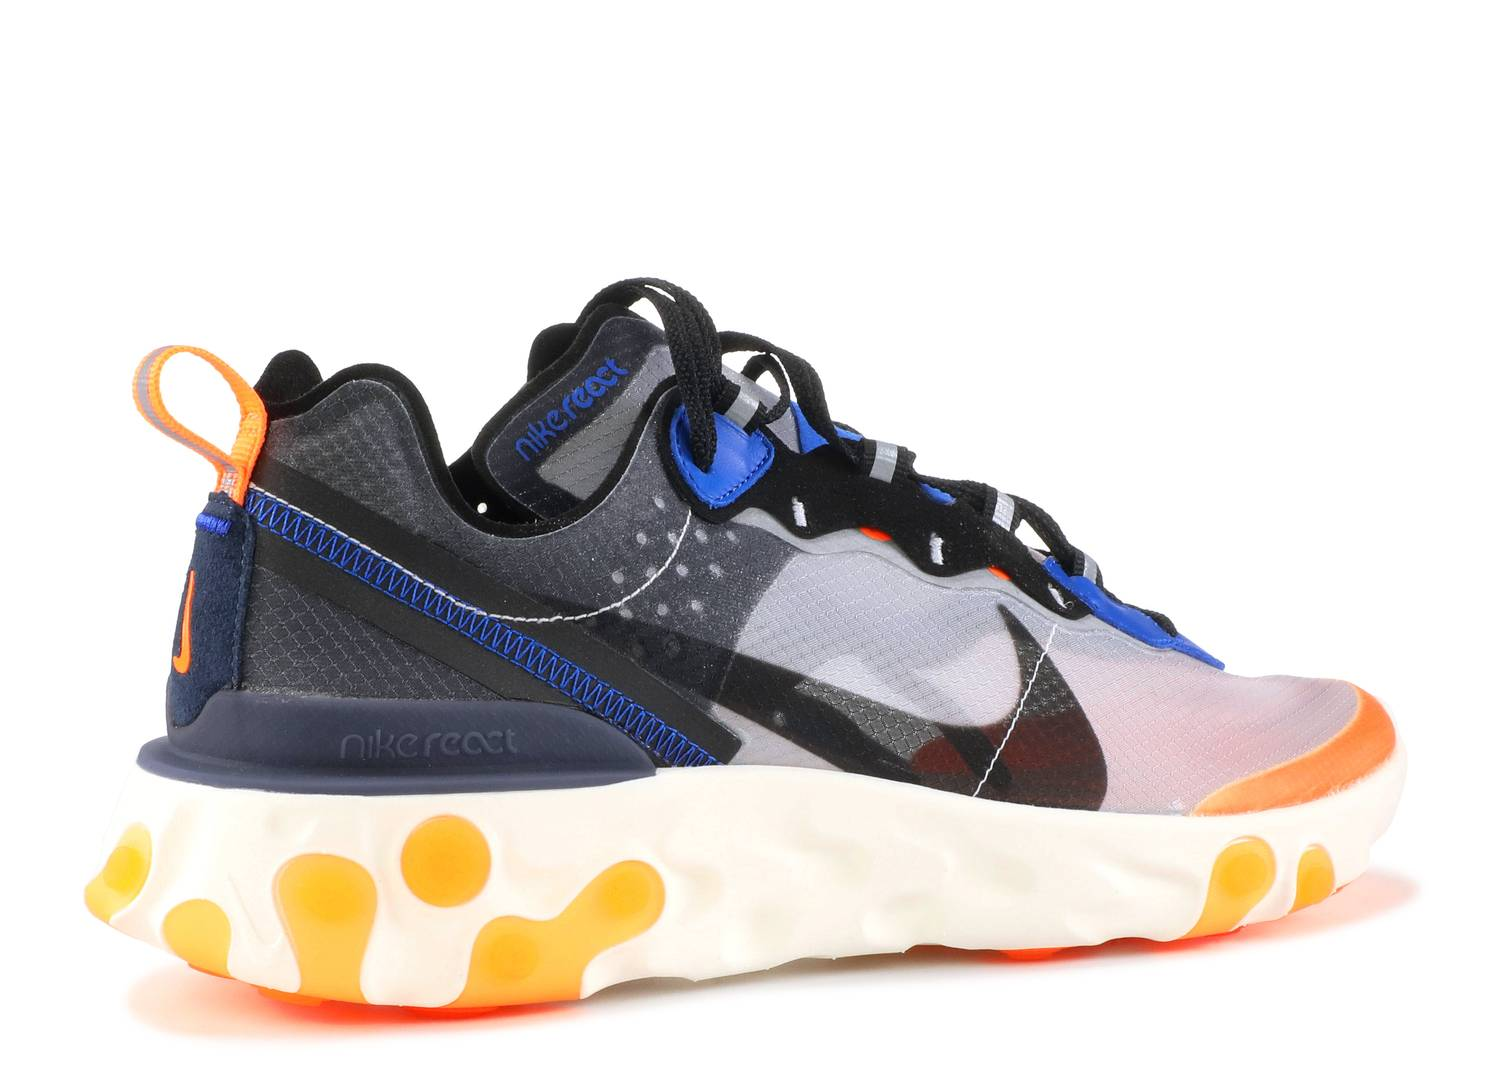 Nike React Element 87 Thunder Blue/Total Orange